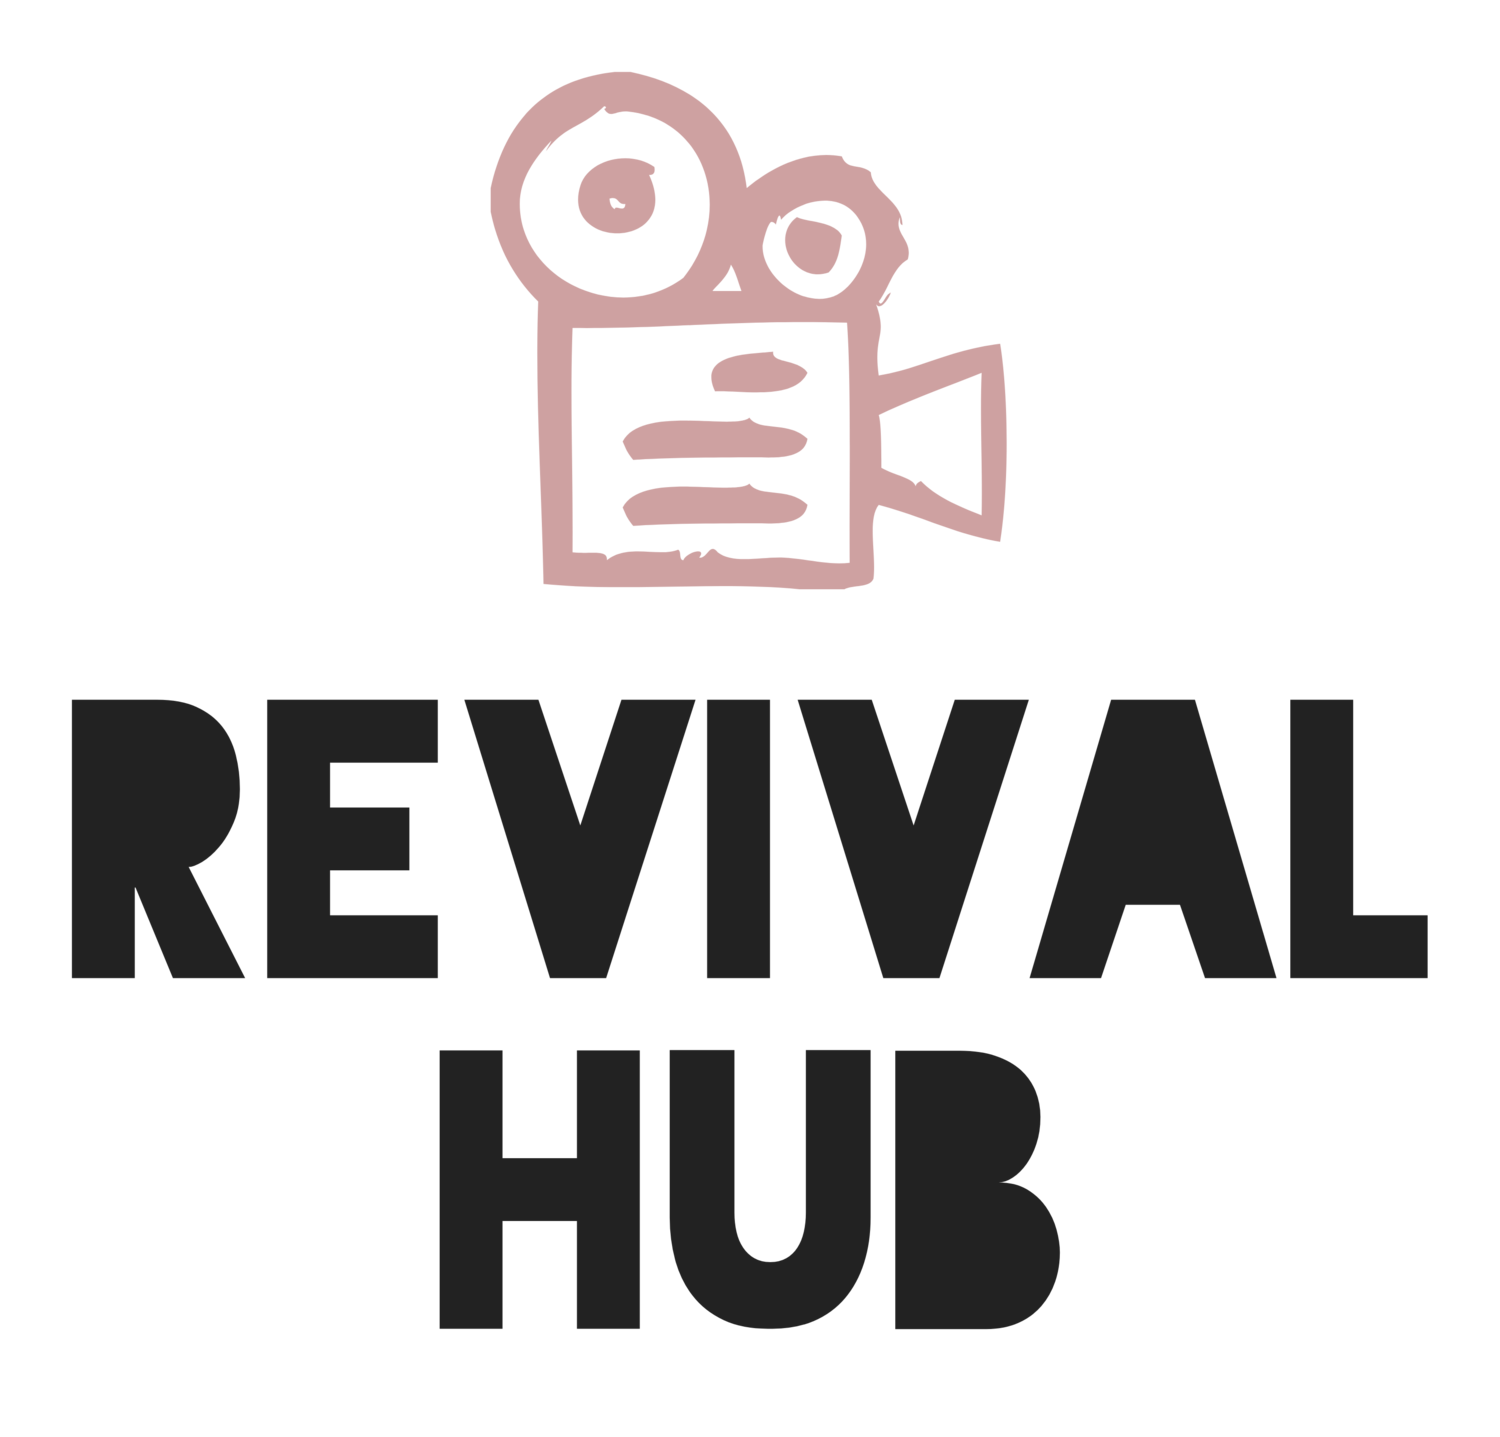 Back to the future part 2 logo png. Revival hub los angeles